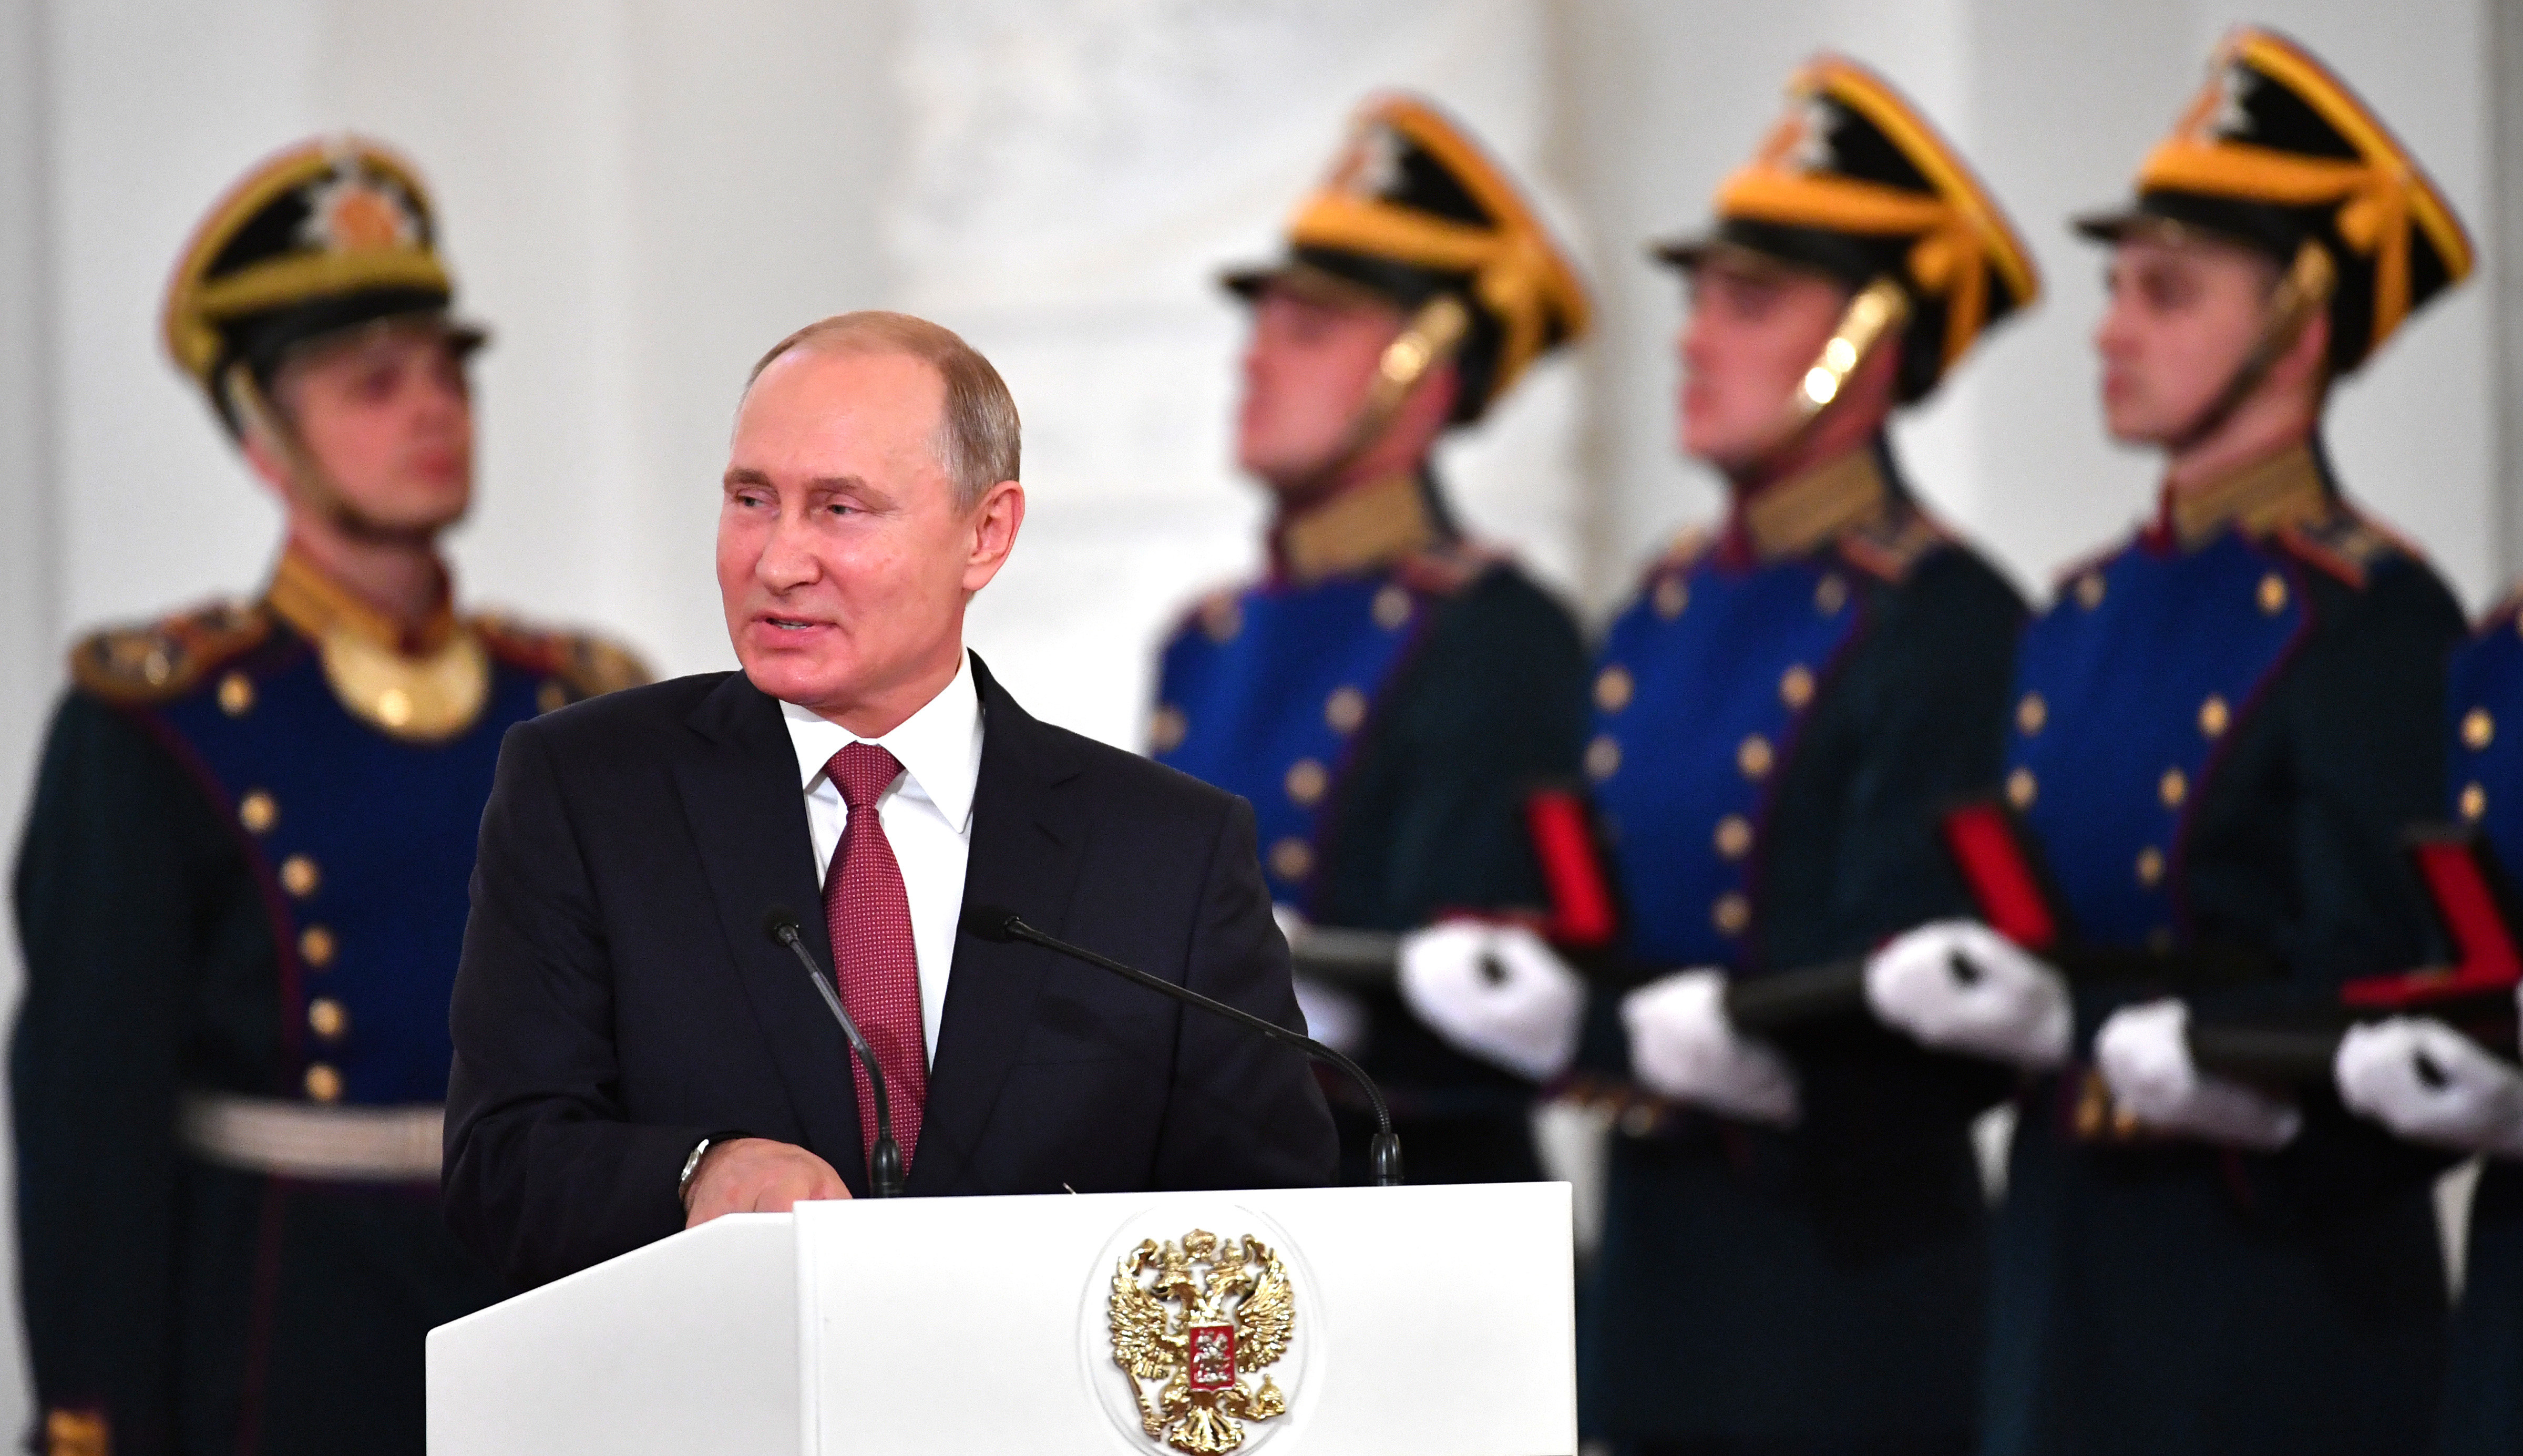 Vladimir Putin believes the race for AI is key to global dominance.